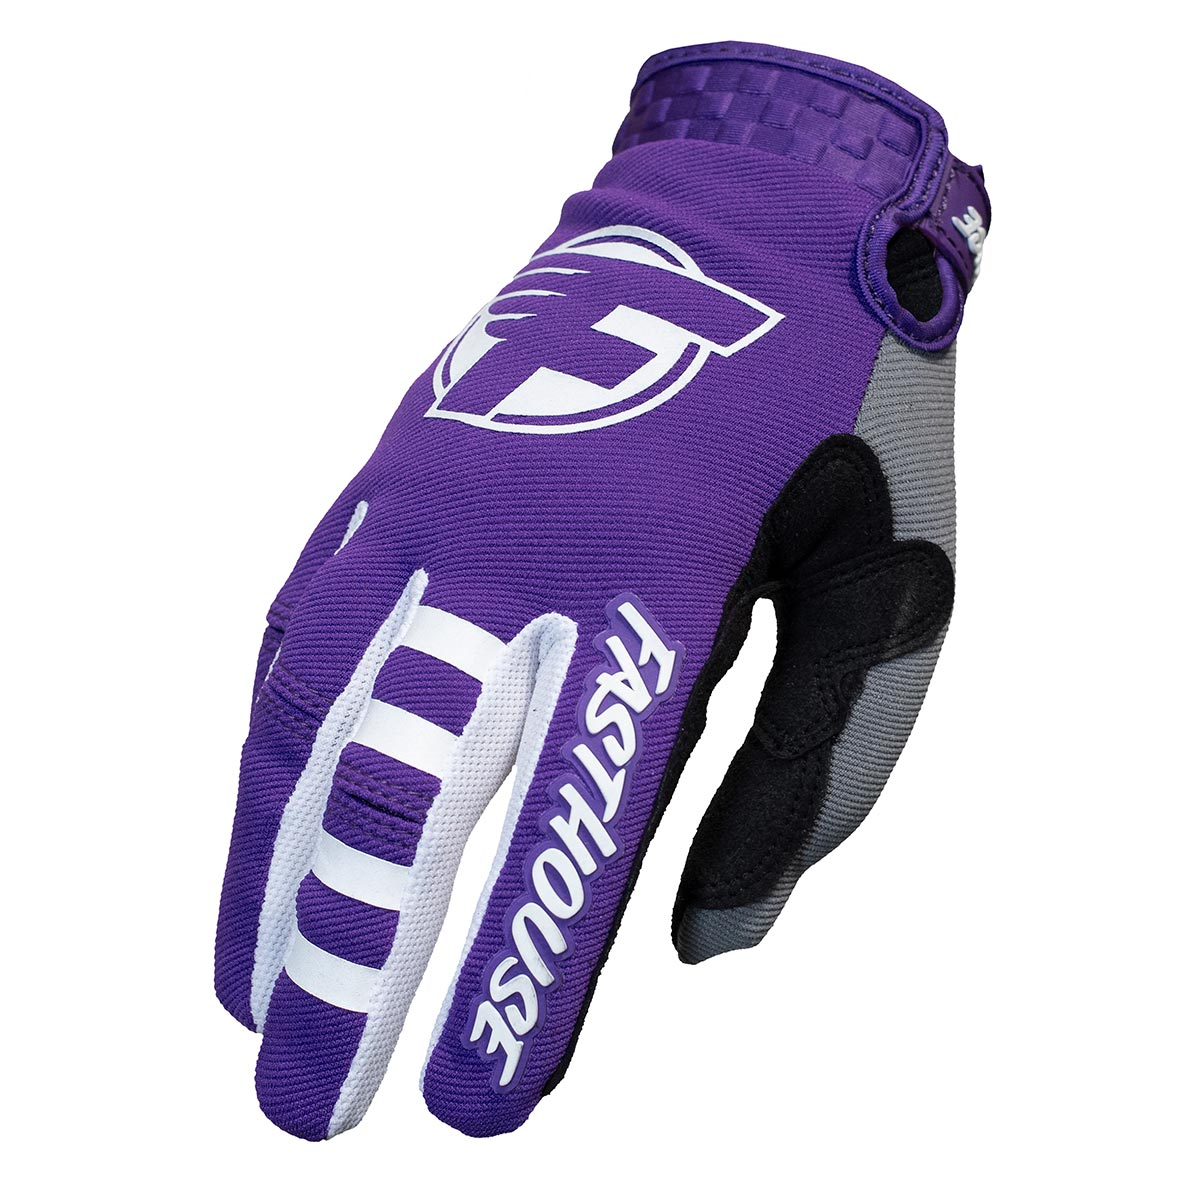 Howler Glove - Purple/Charcoal